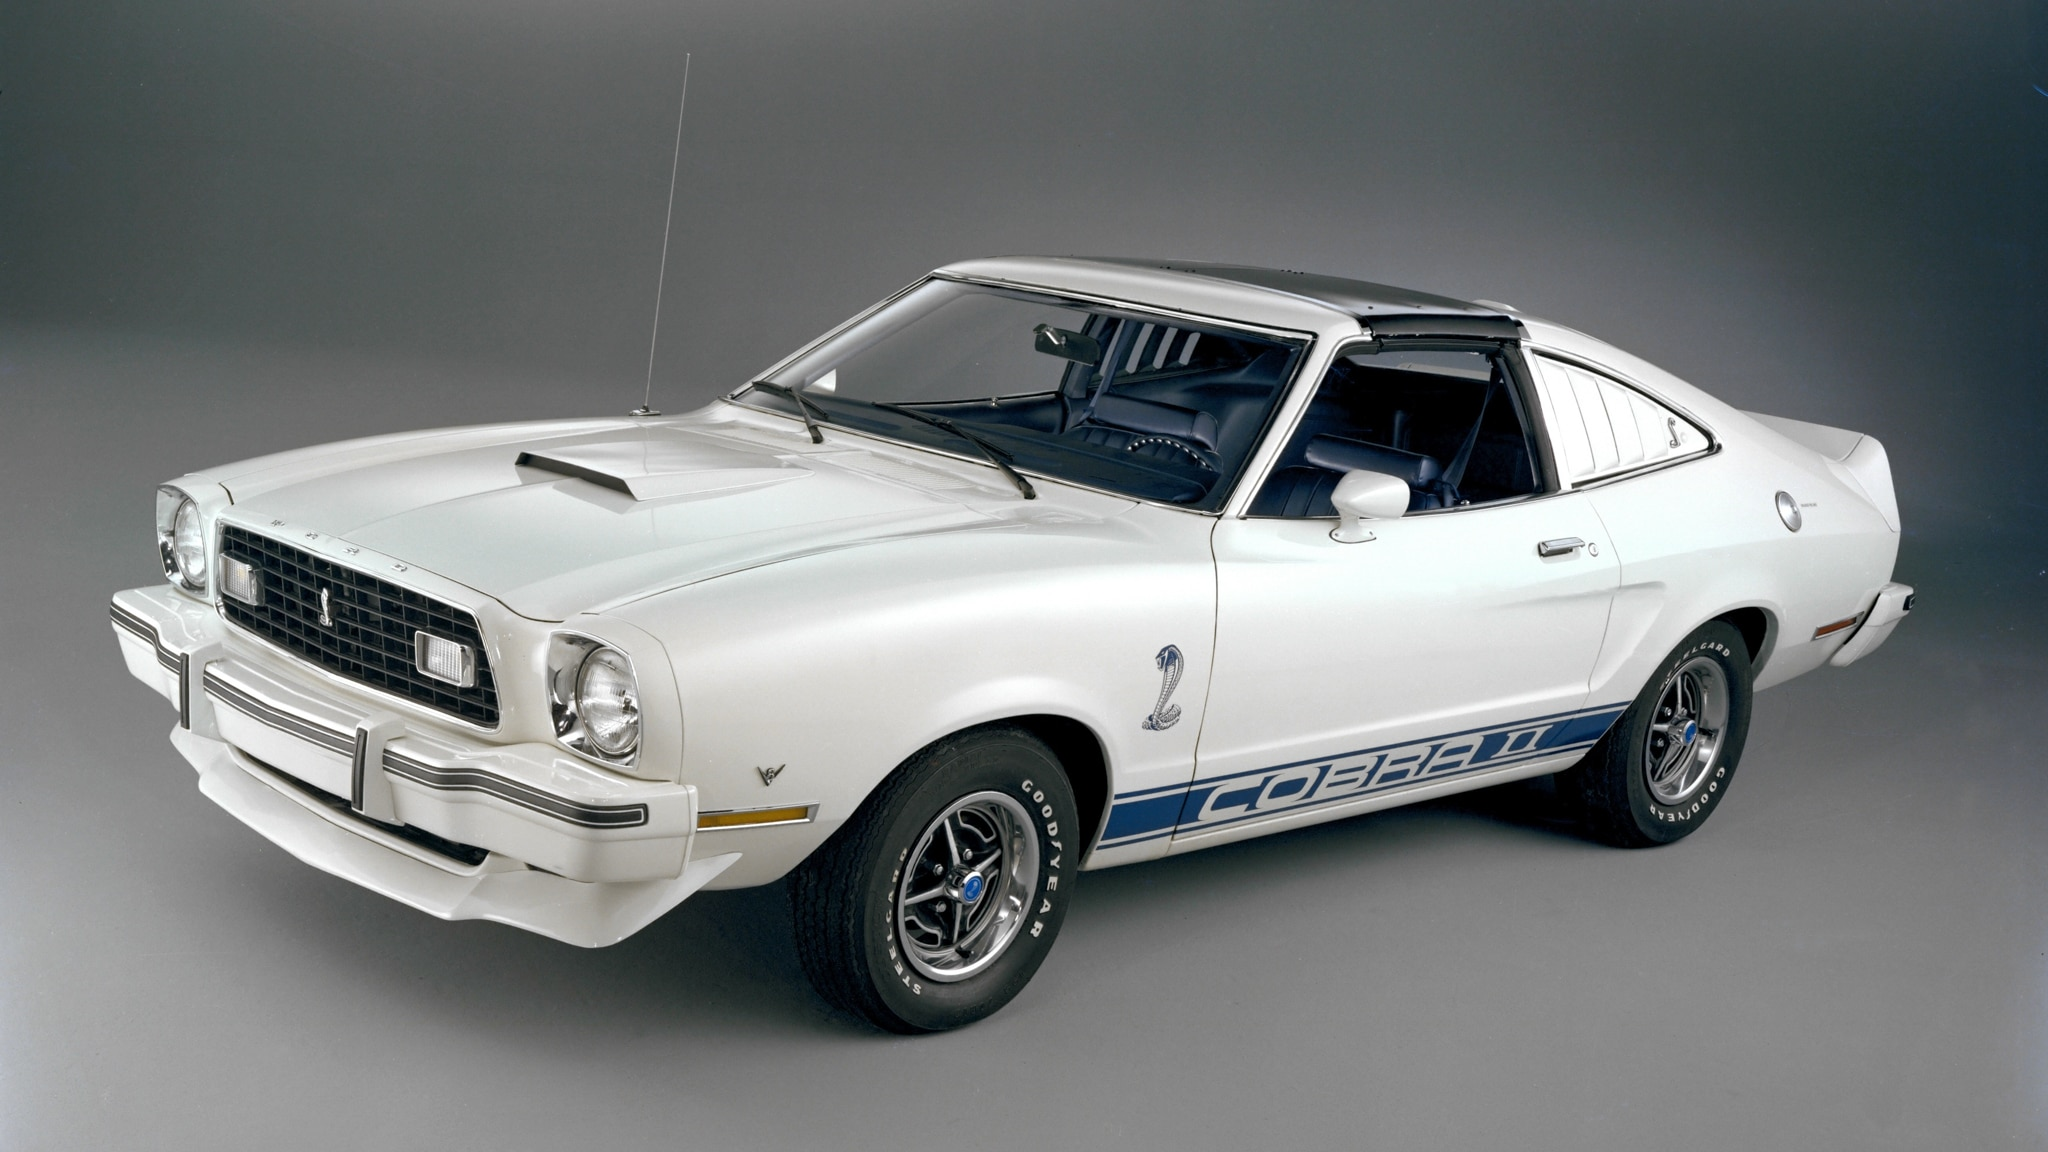 No Reserve: 1978 Ford Mustang II for sale on BaT Auctions - sold for $4,600 on April 23, 2019 ...